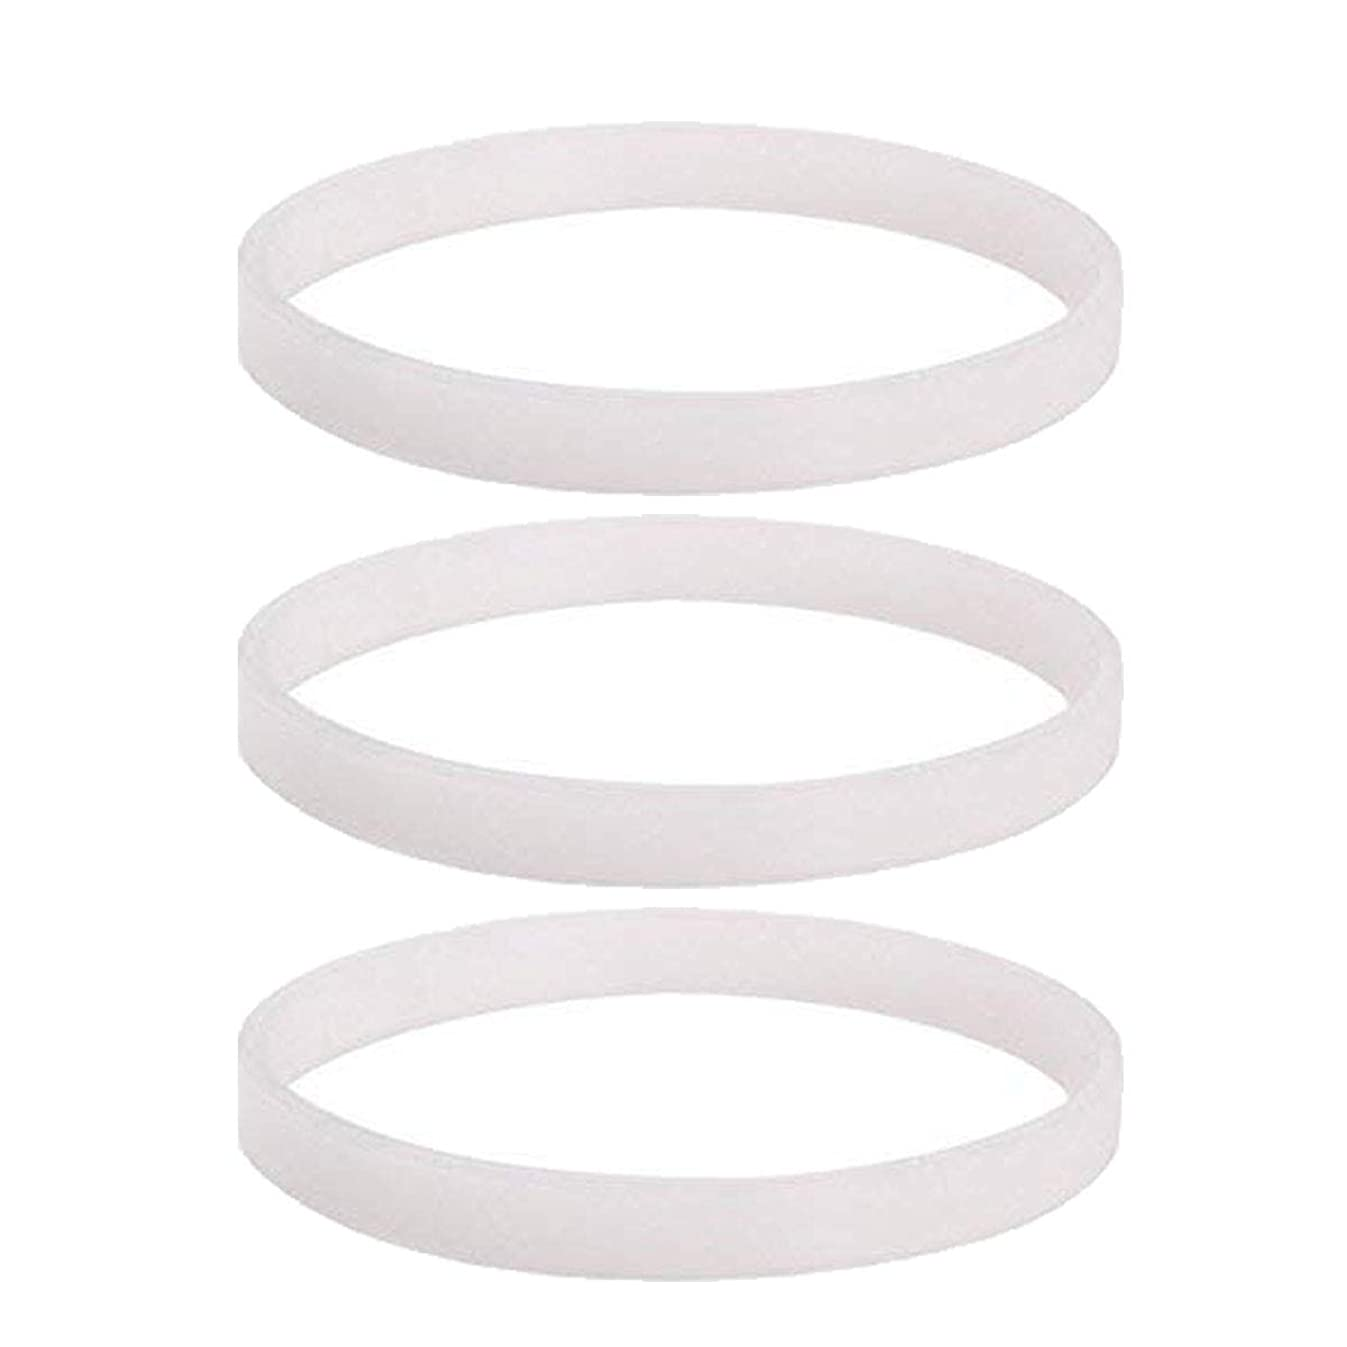 Gasket replacement for Nutri Ninja,3 PCS Rubber Gasket Replacement Parts for Ninja Juicer 6 Fin and 7 Fin Blender